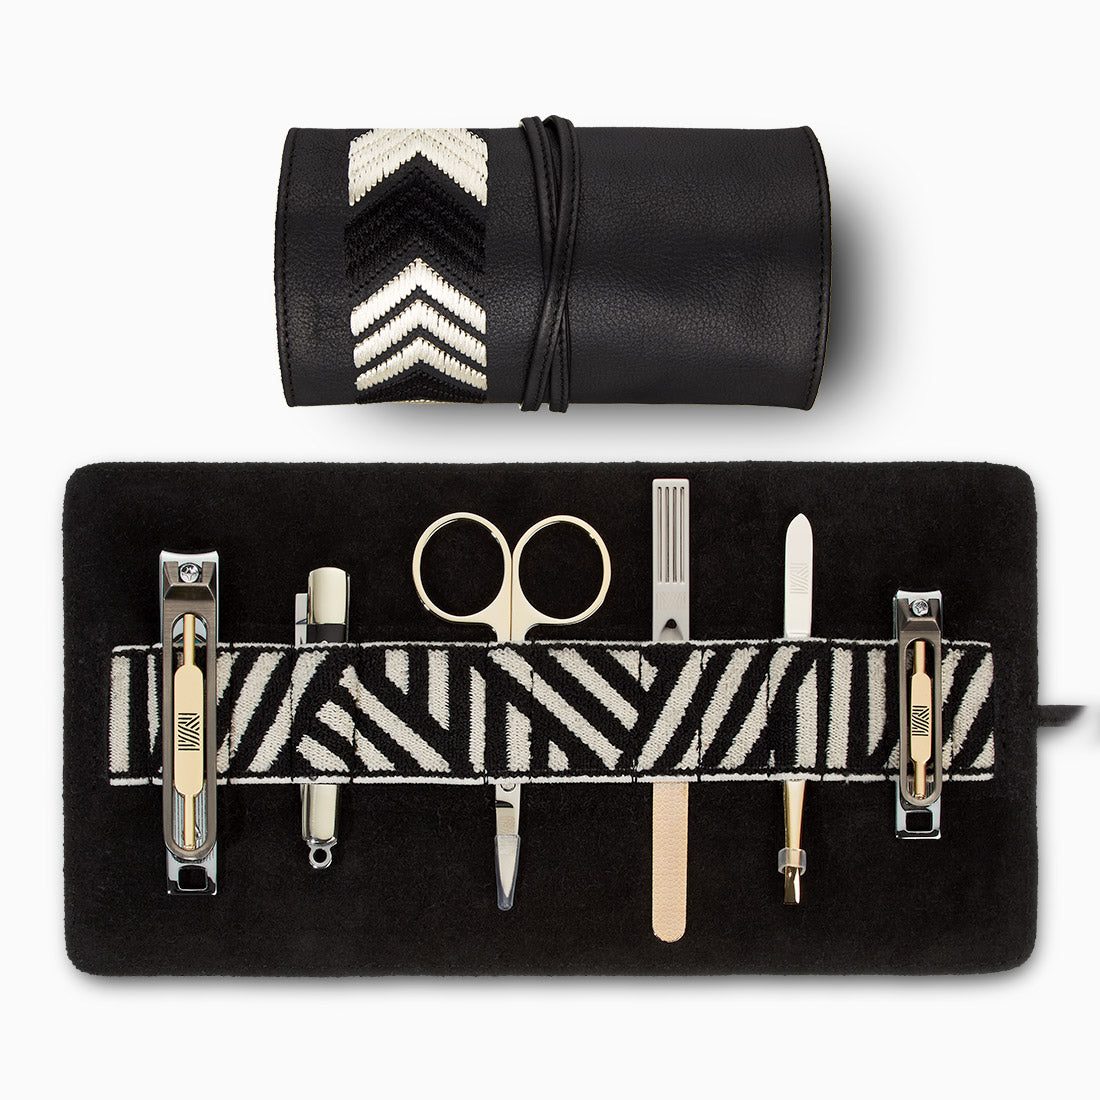 Gaucho Grooming Roll, Black: Men's Manicure Set